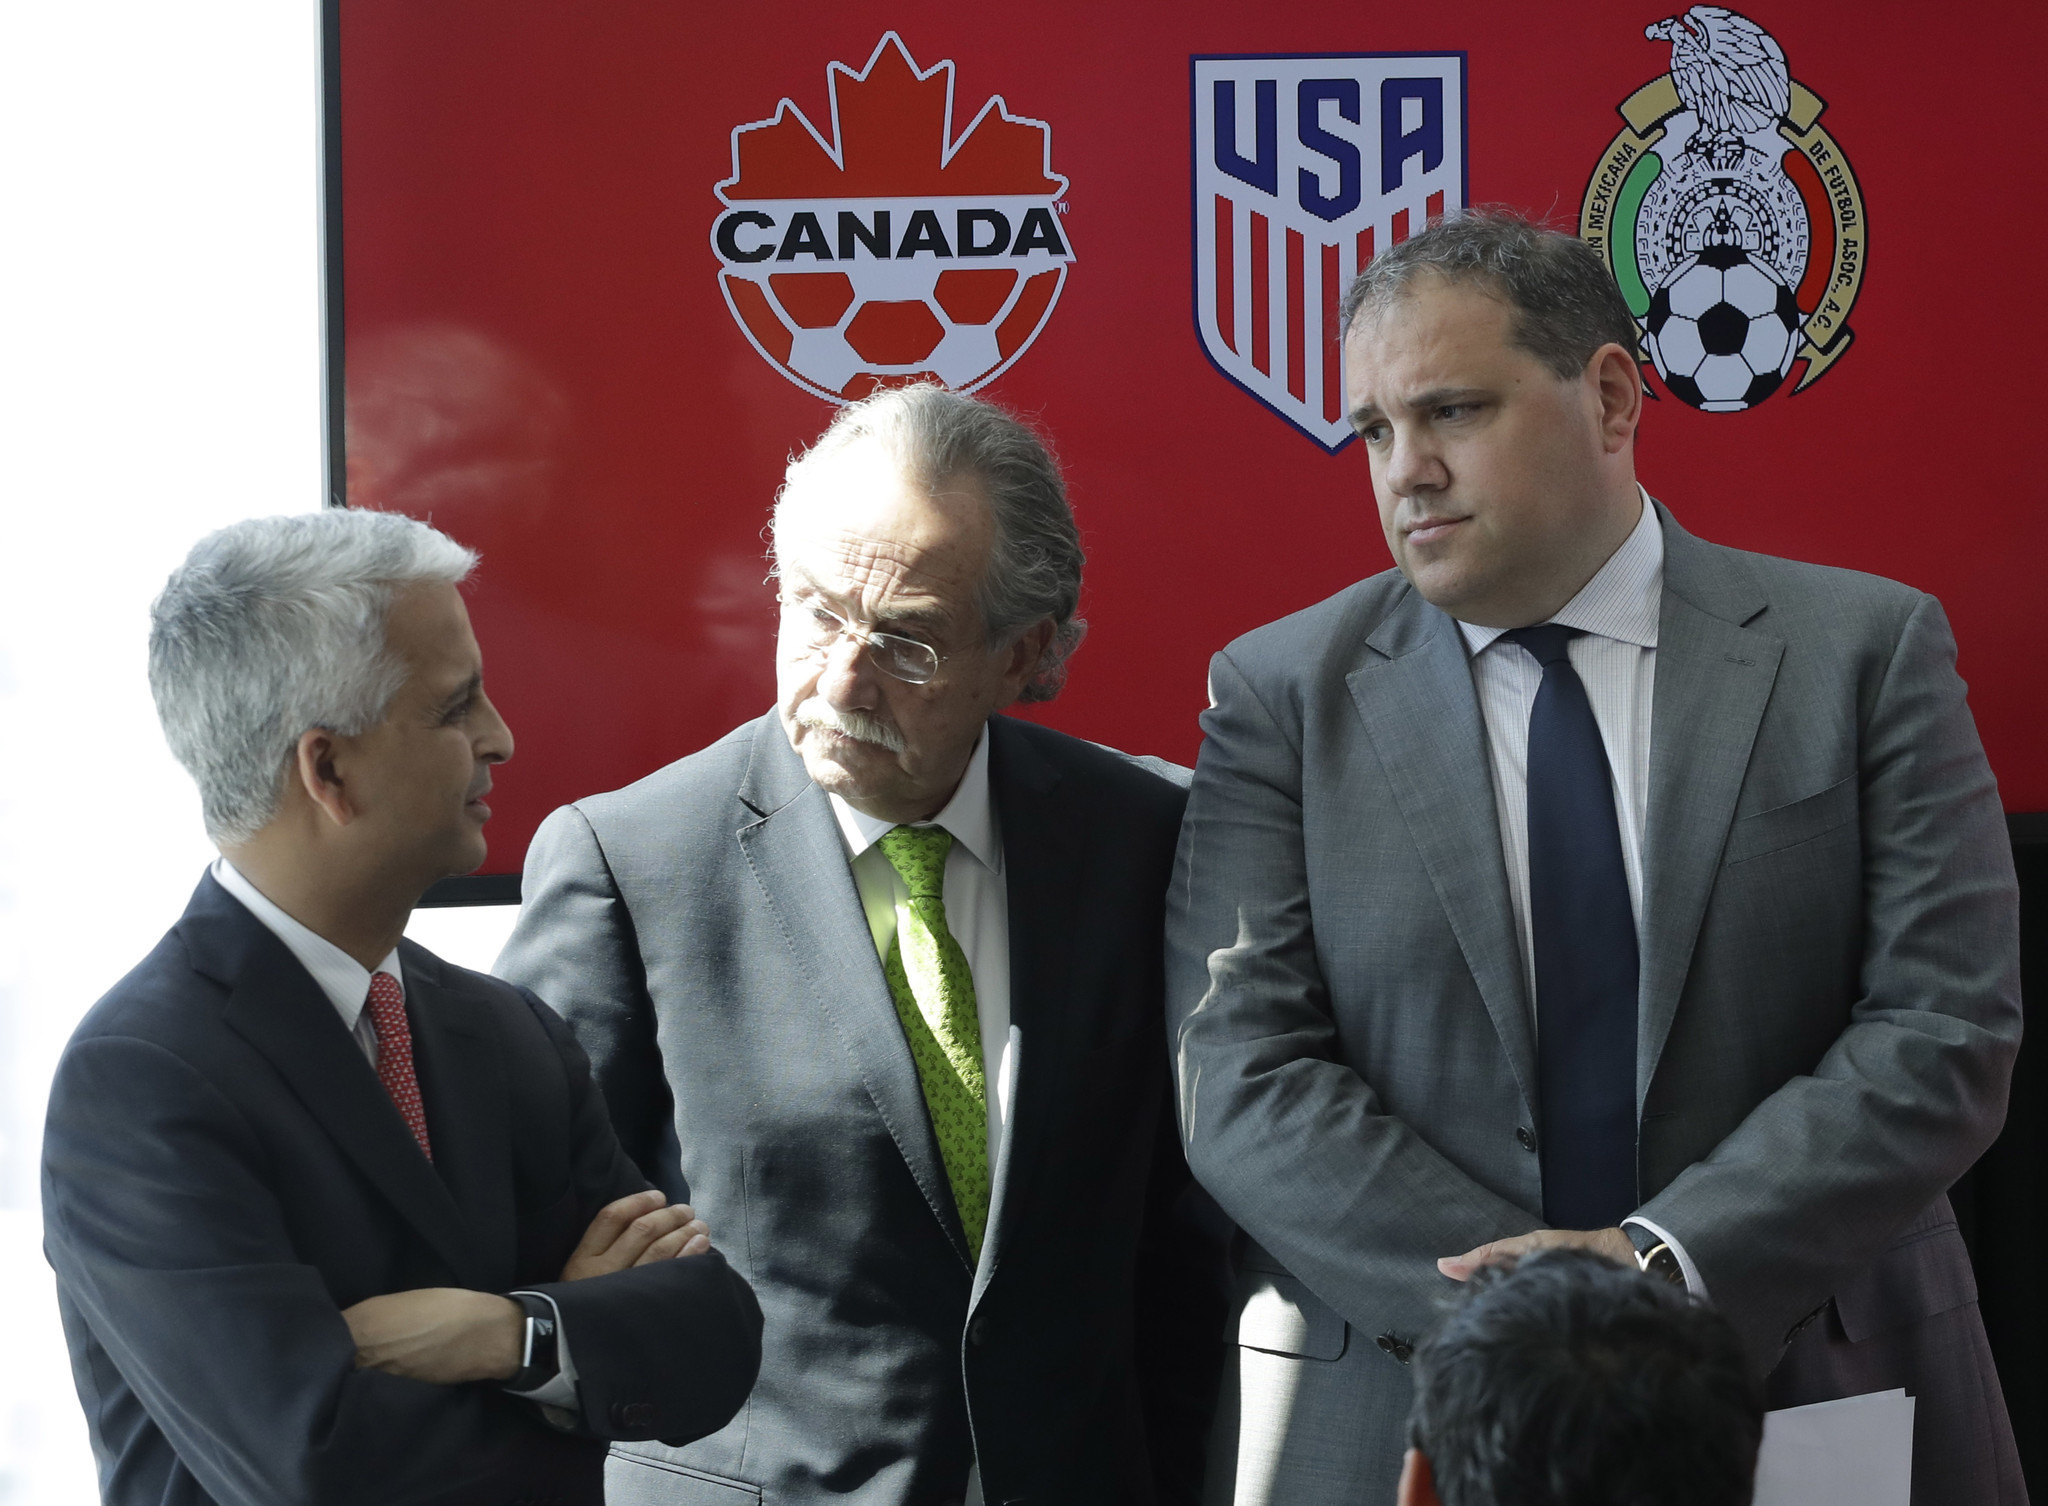 A NAFTA World Cup? Just the thing to improve relations